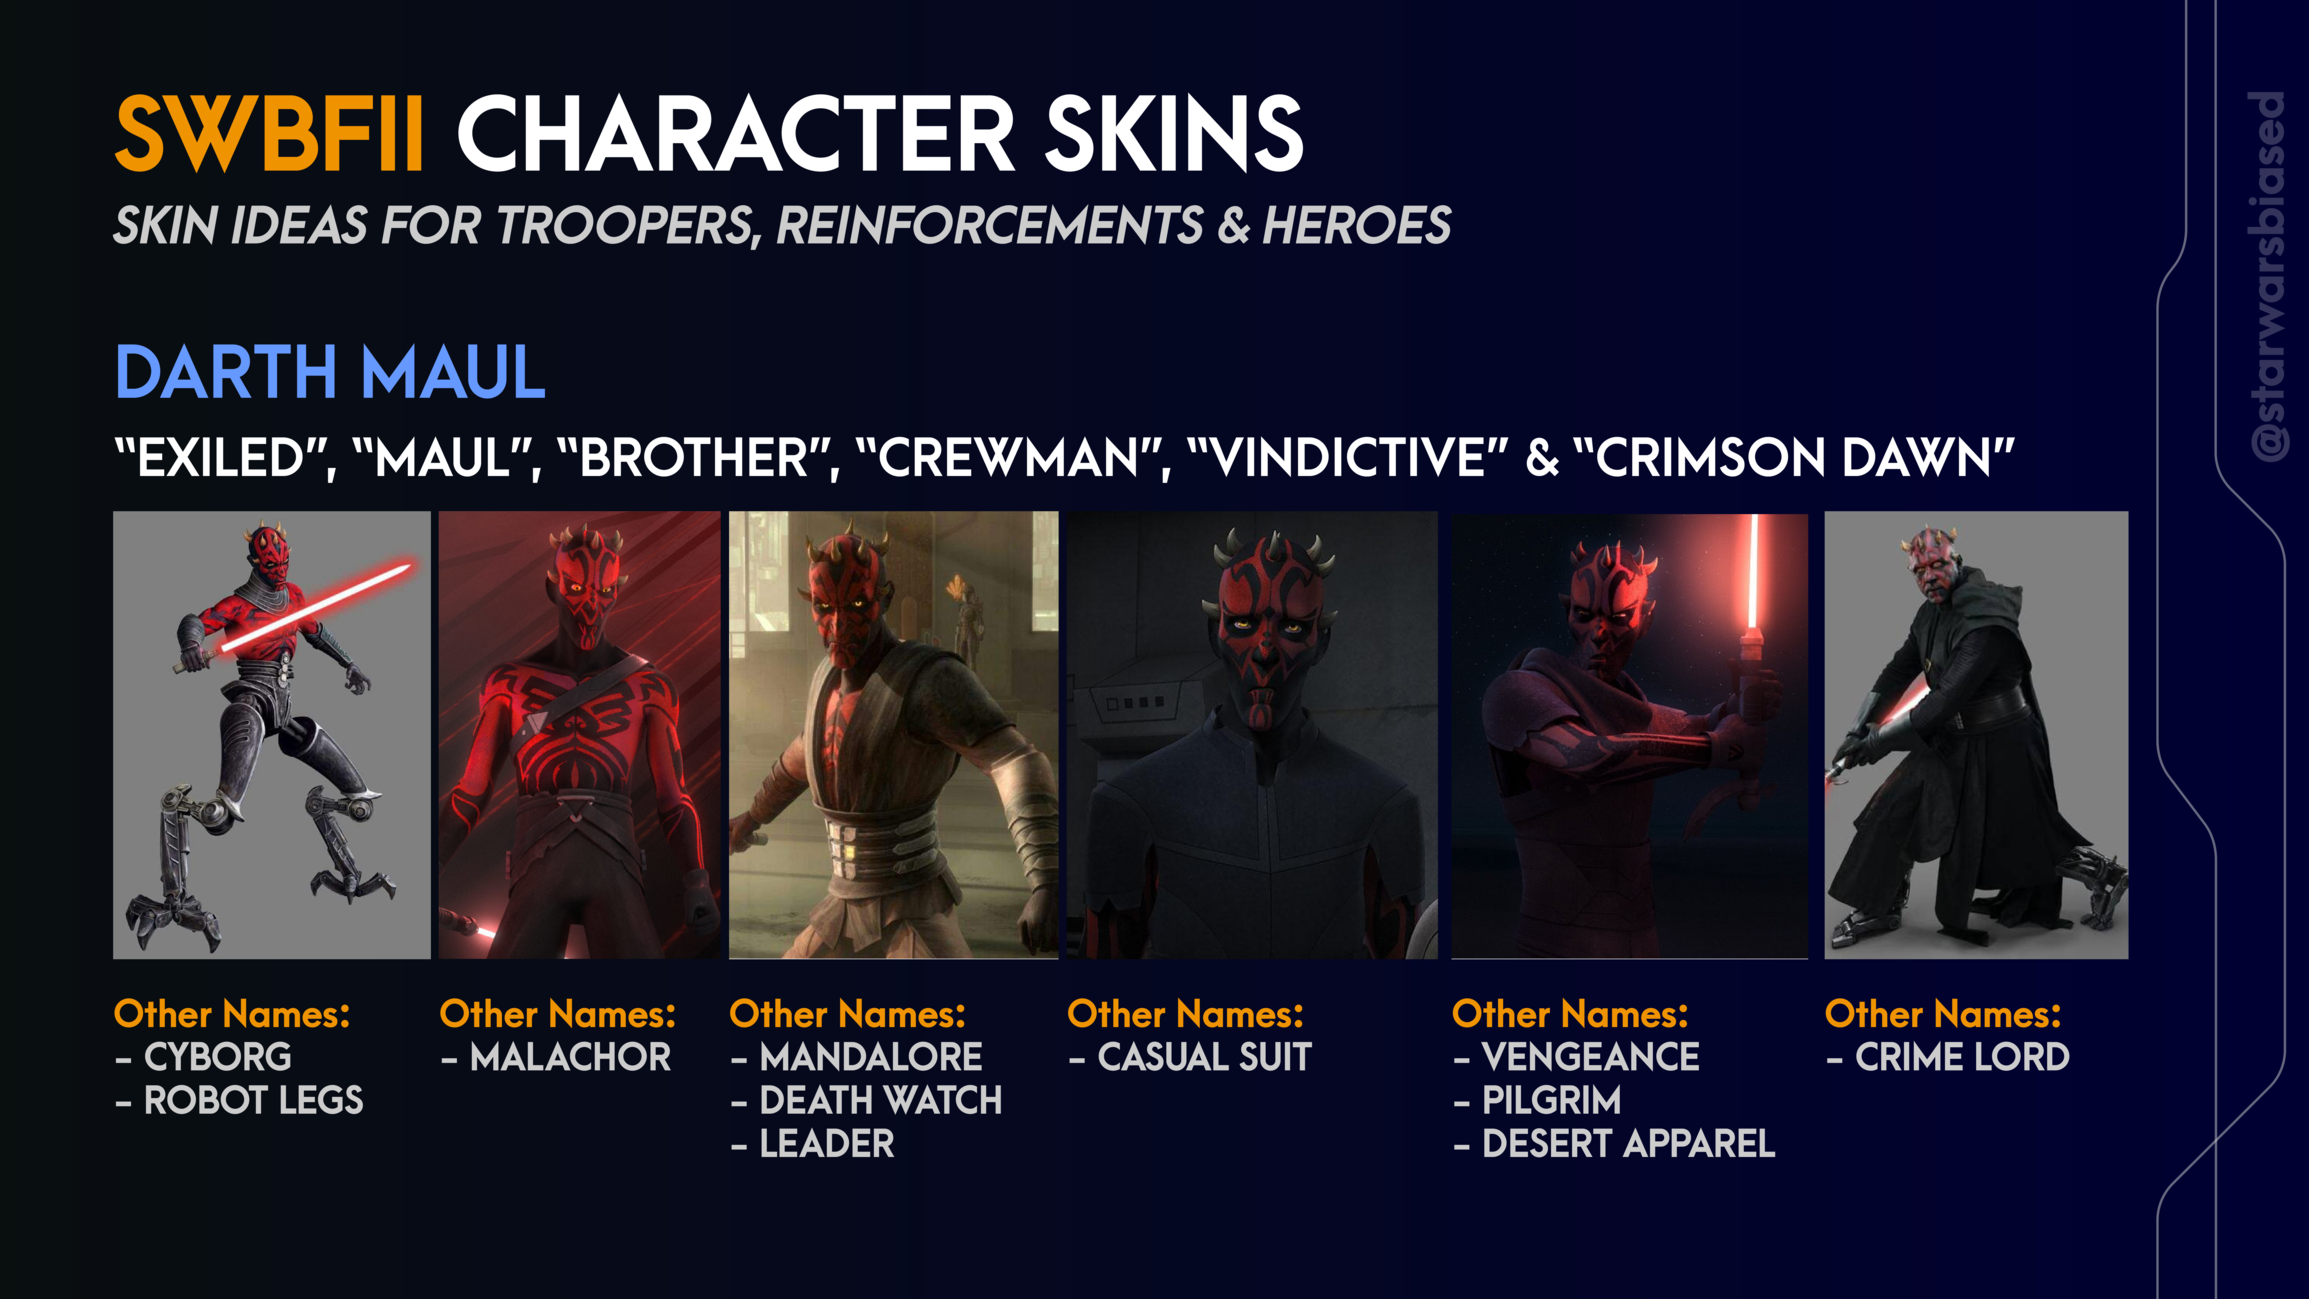 My Ideal Plan for Battlefront II Future Content (PART 2): HERO SKINS